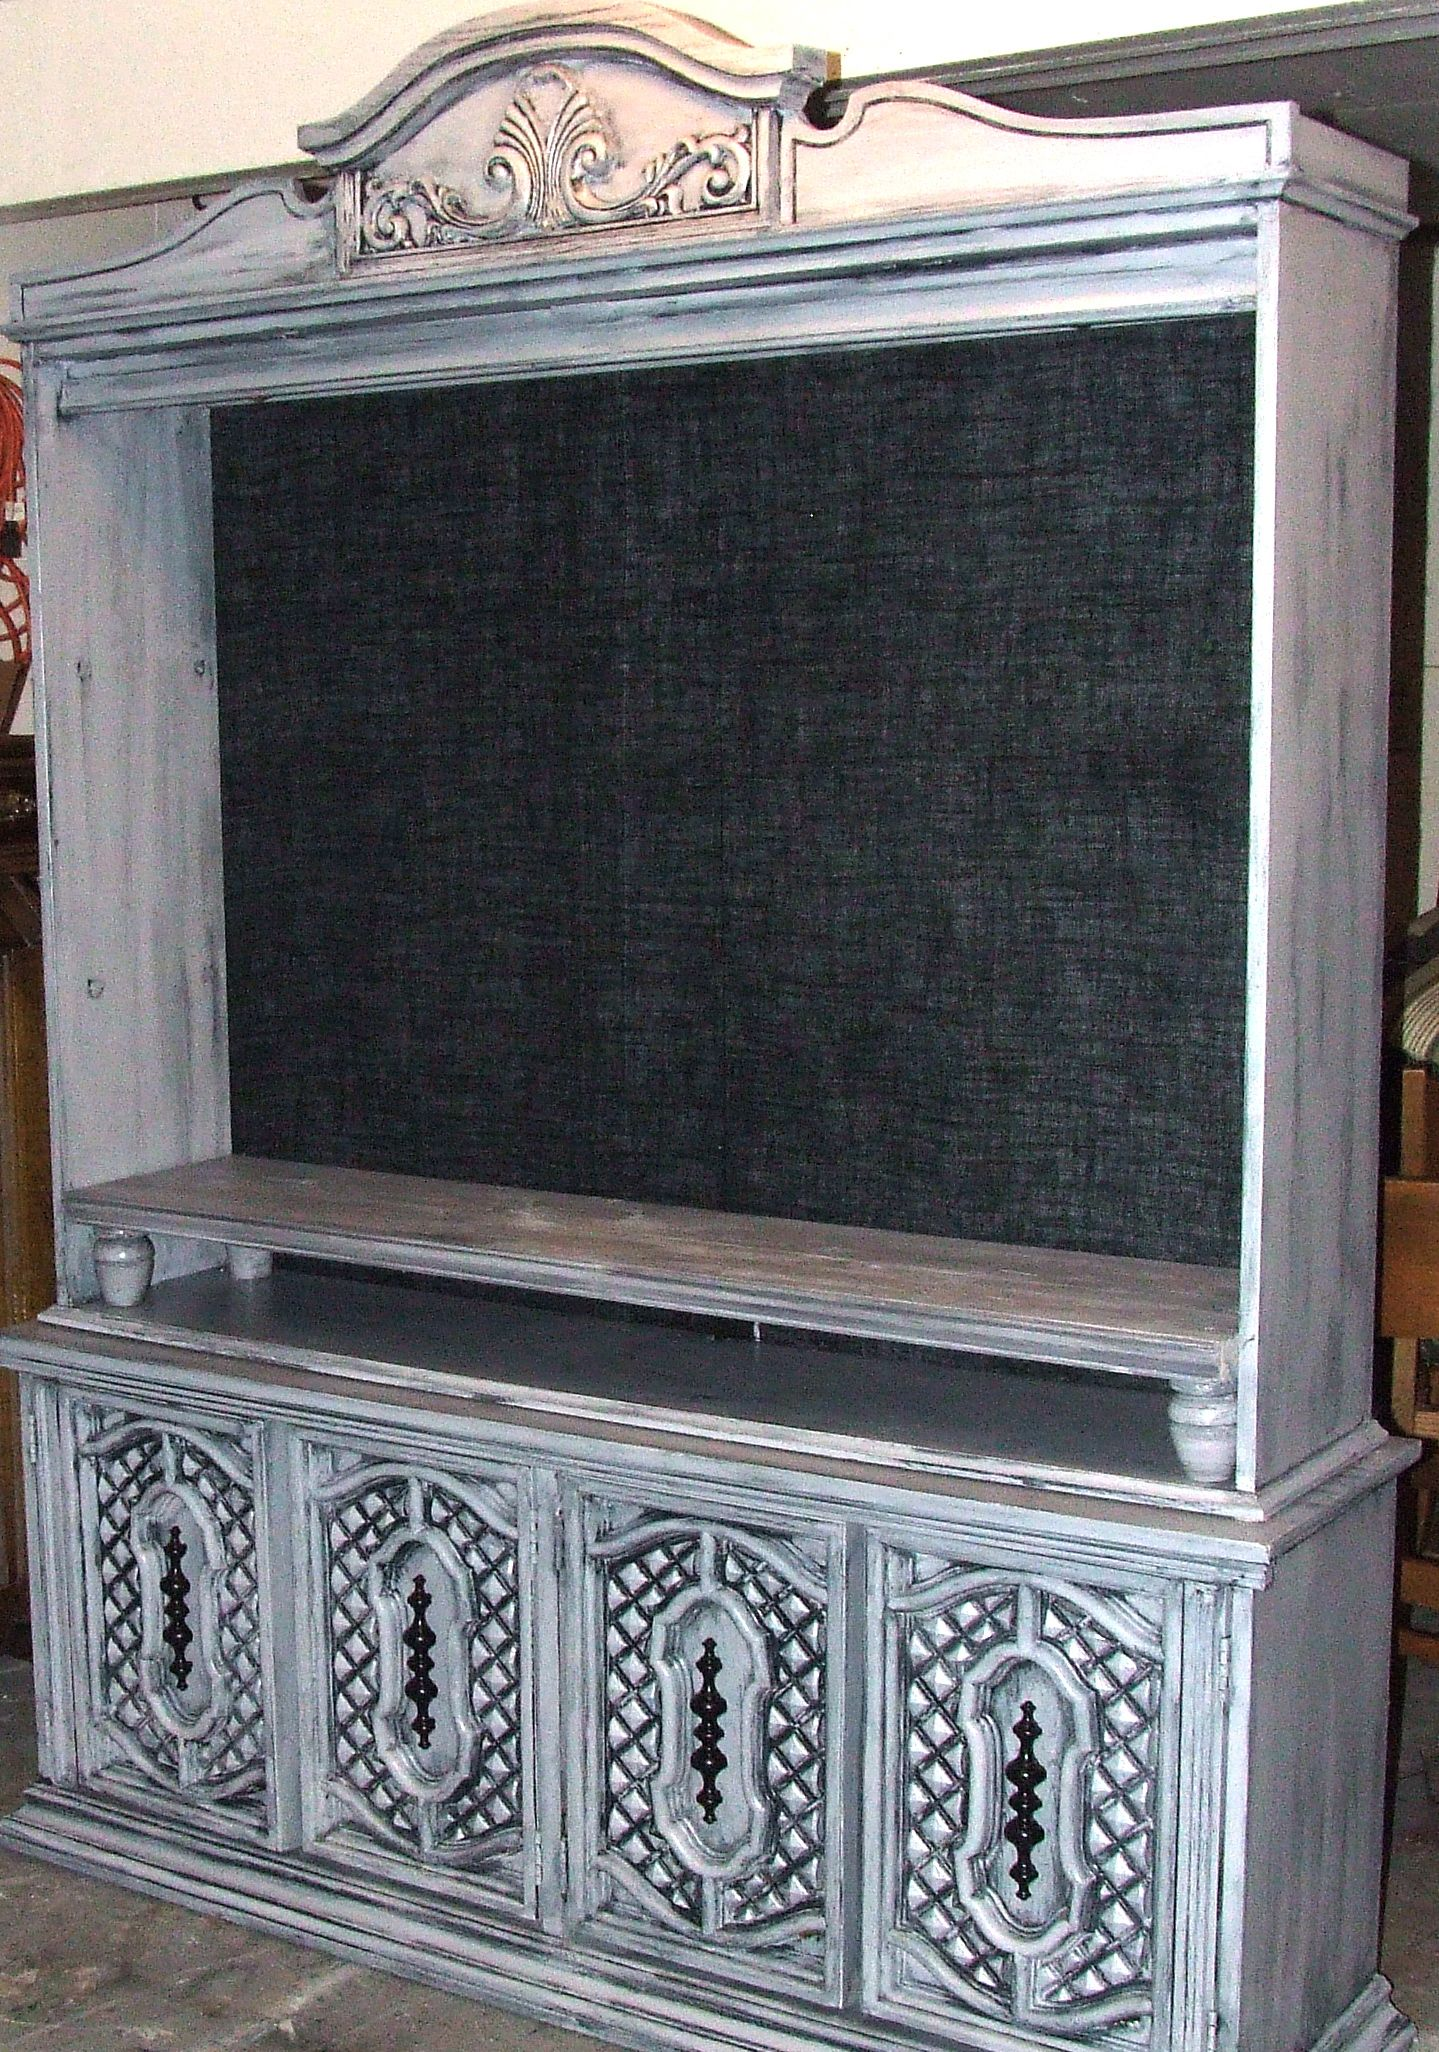 ^ estoration Hardware Inspired Gray hina Hutch abinet converted ...